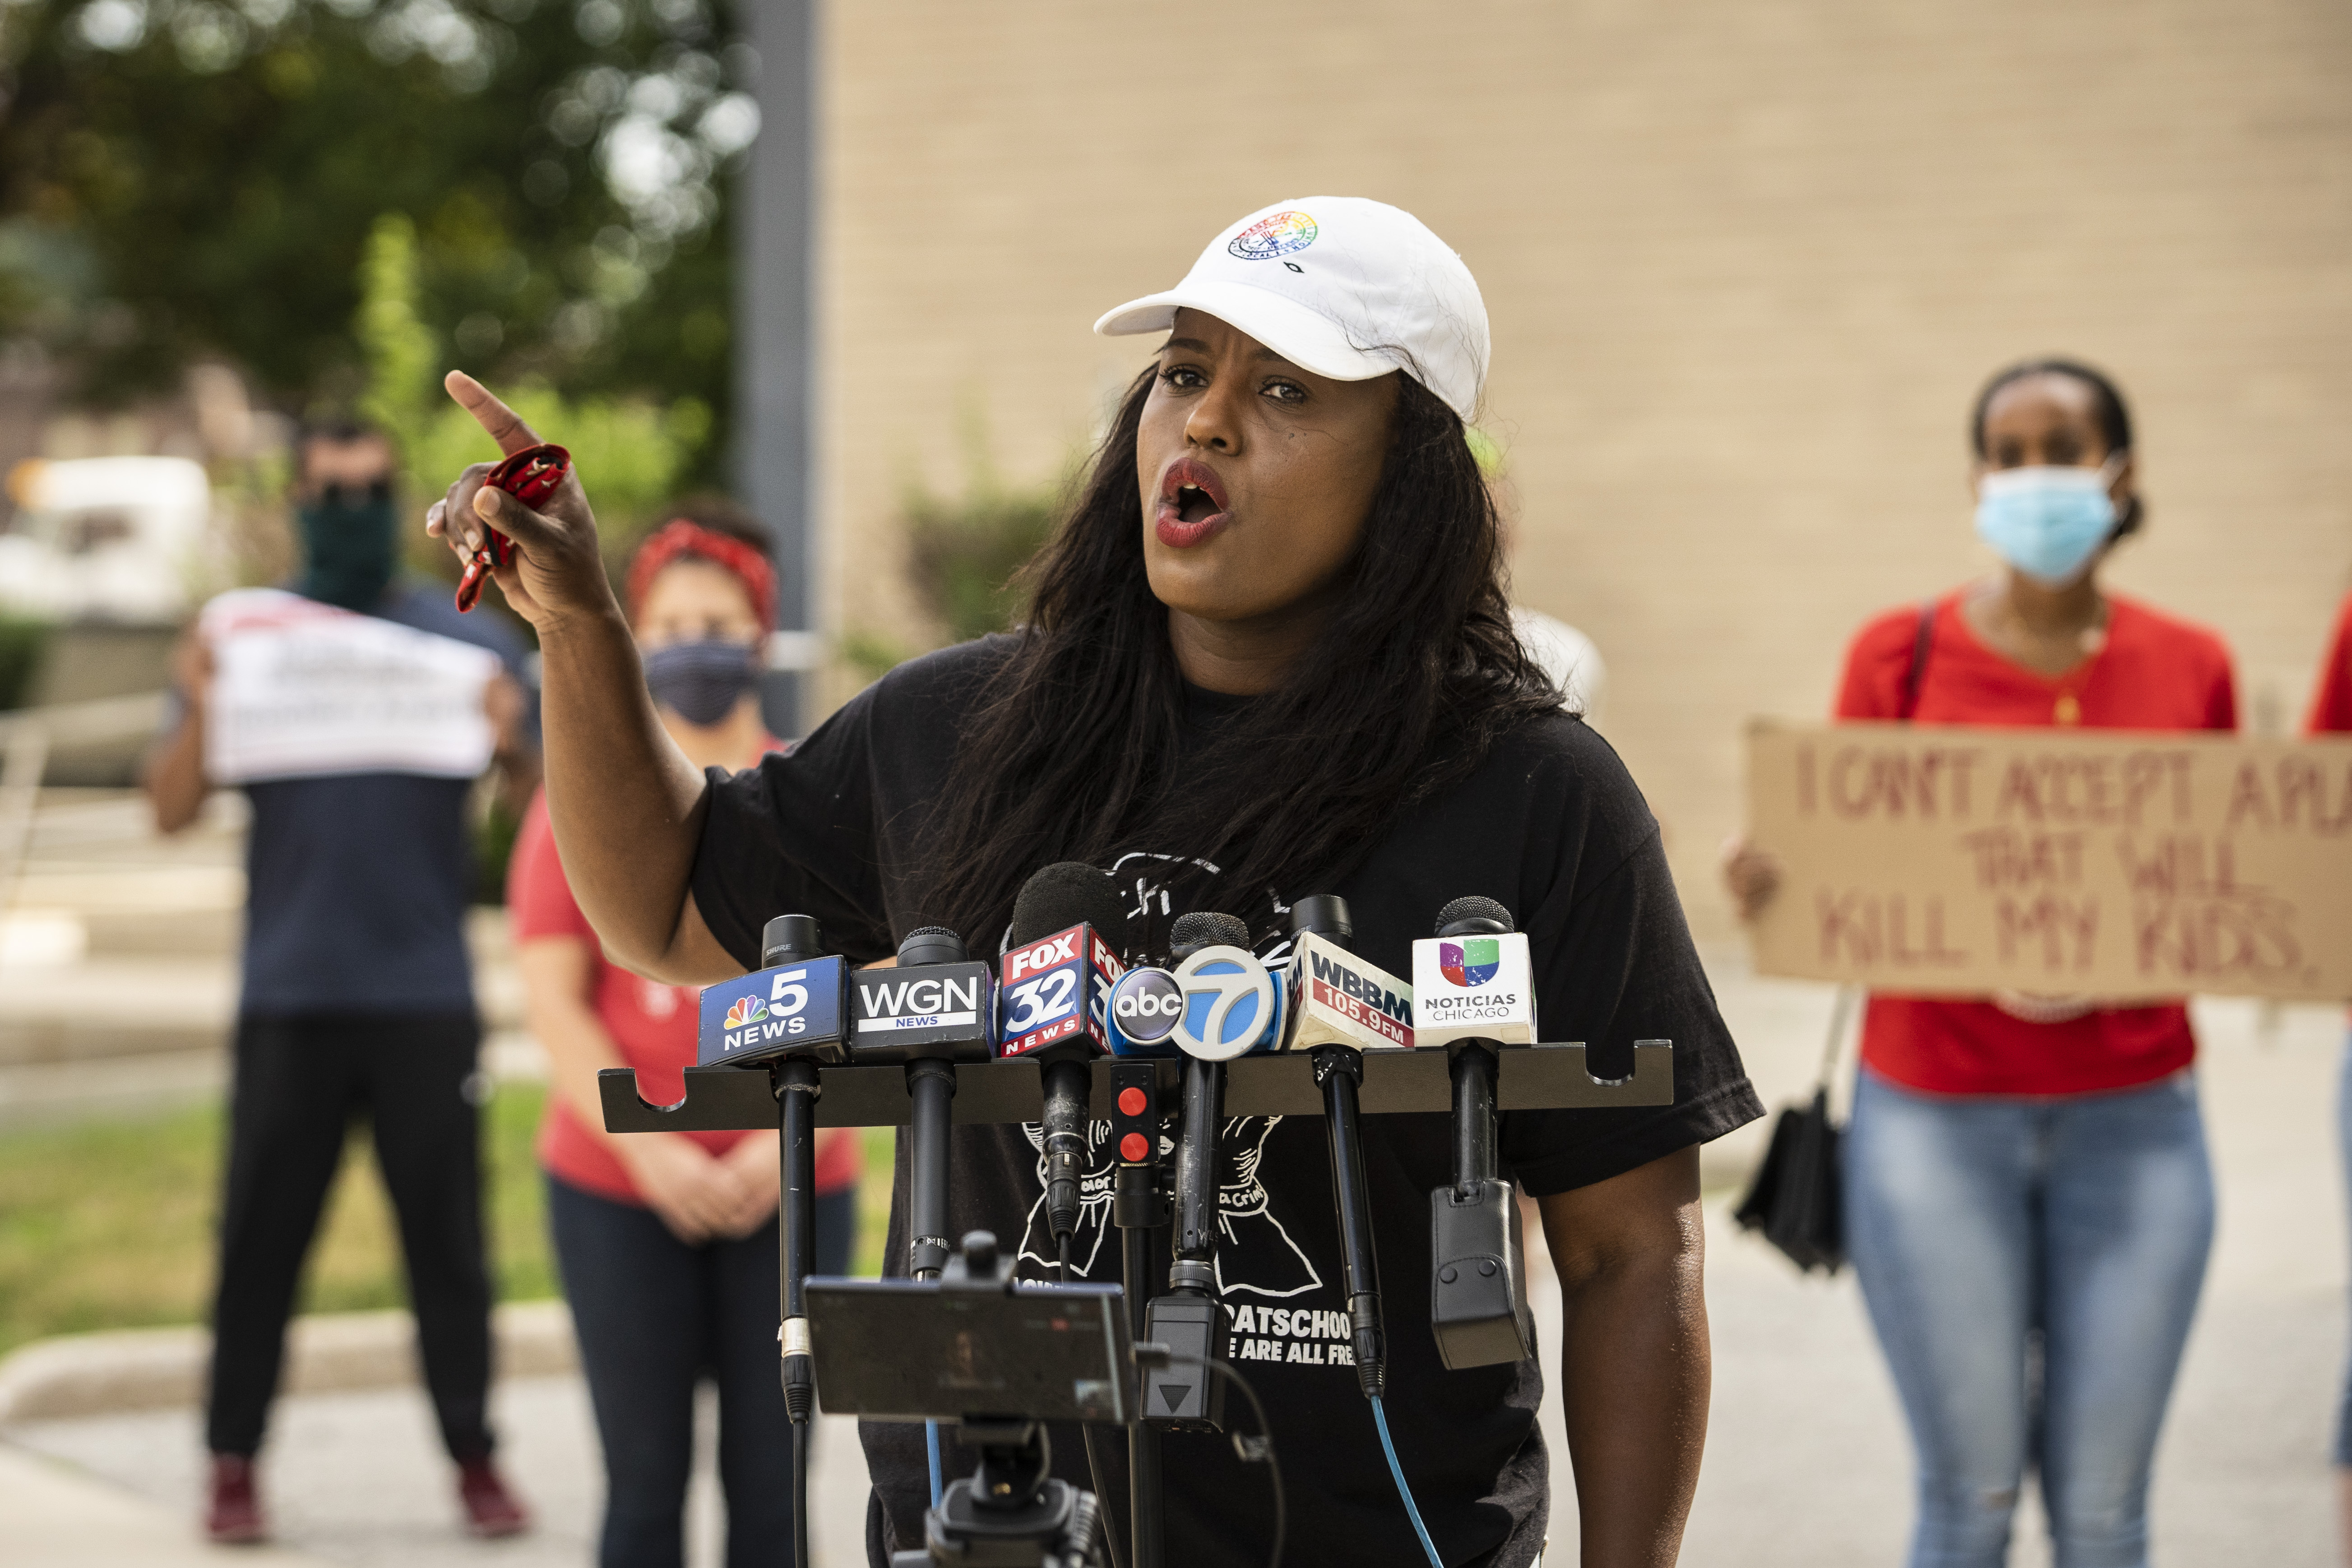 Stacy Davis Gates, vice president of the Chicago Teachers Union, speaks during a press conference outside CICS ChicagoQuest High School, at 1443 N. Ogden Ave., to demand that Chicago Public Schools opens virtually in the fall, Wednesday morning, July 22, 2020.